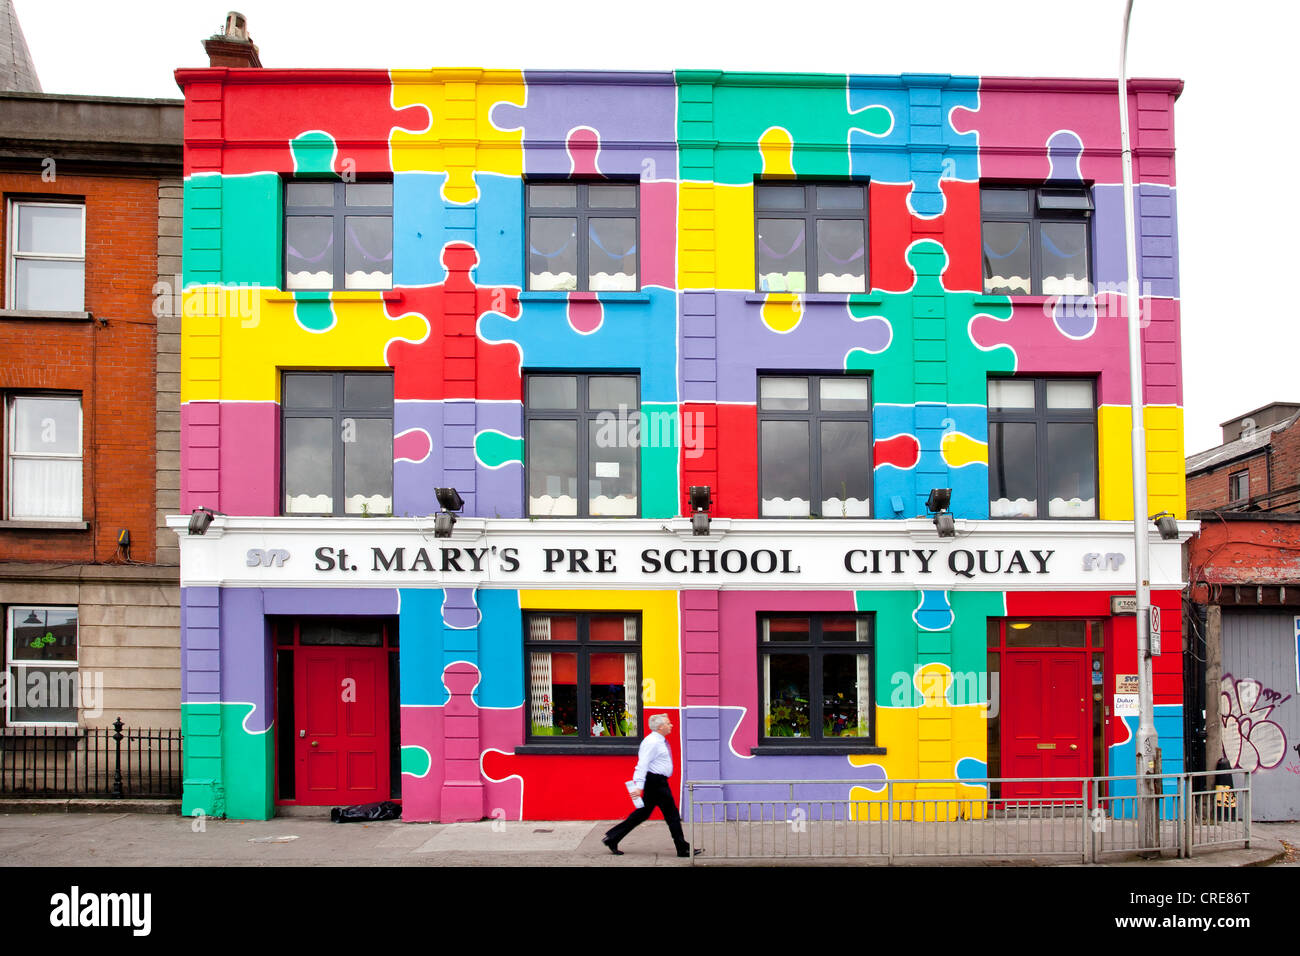 Brightly painted building of St. Mary's Preschool at City Quay, Dublin, Ireland, Europe - Stock Image